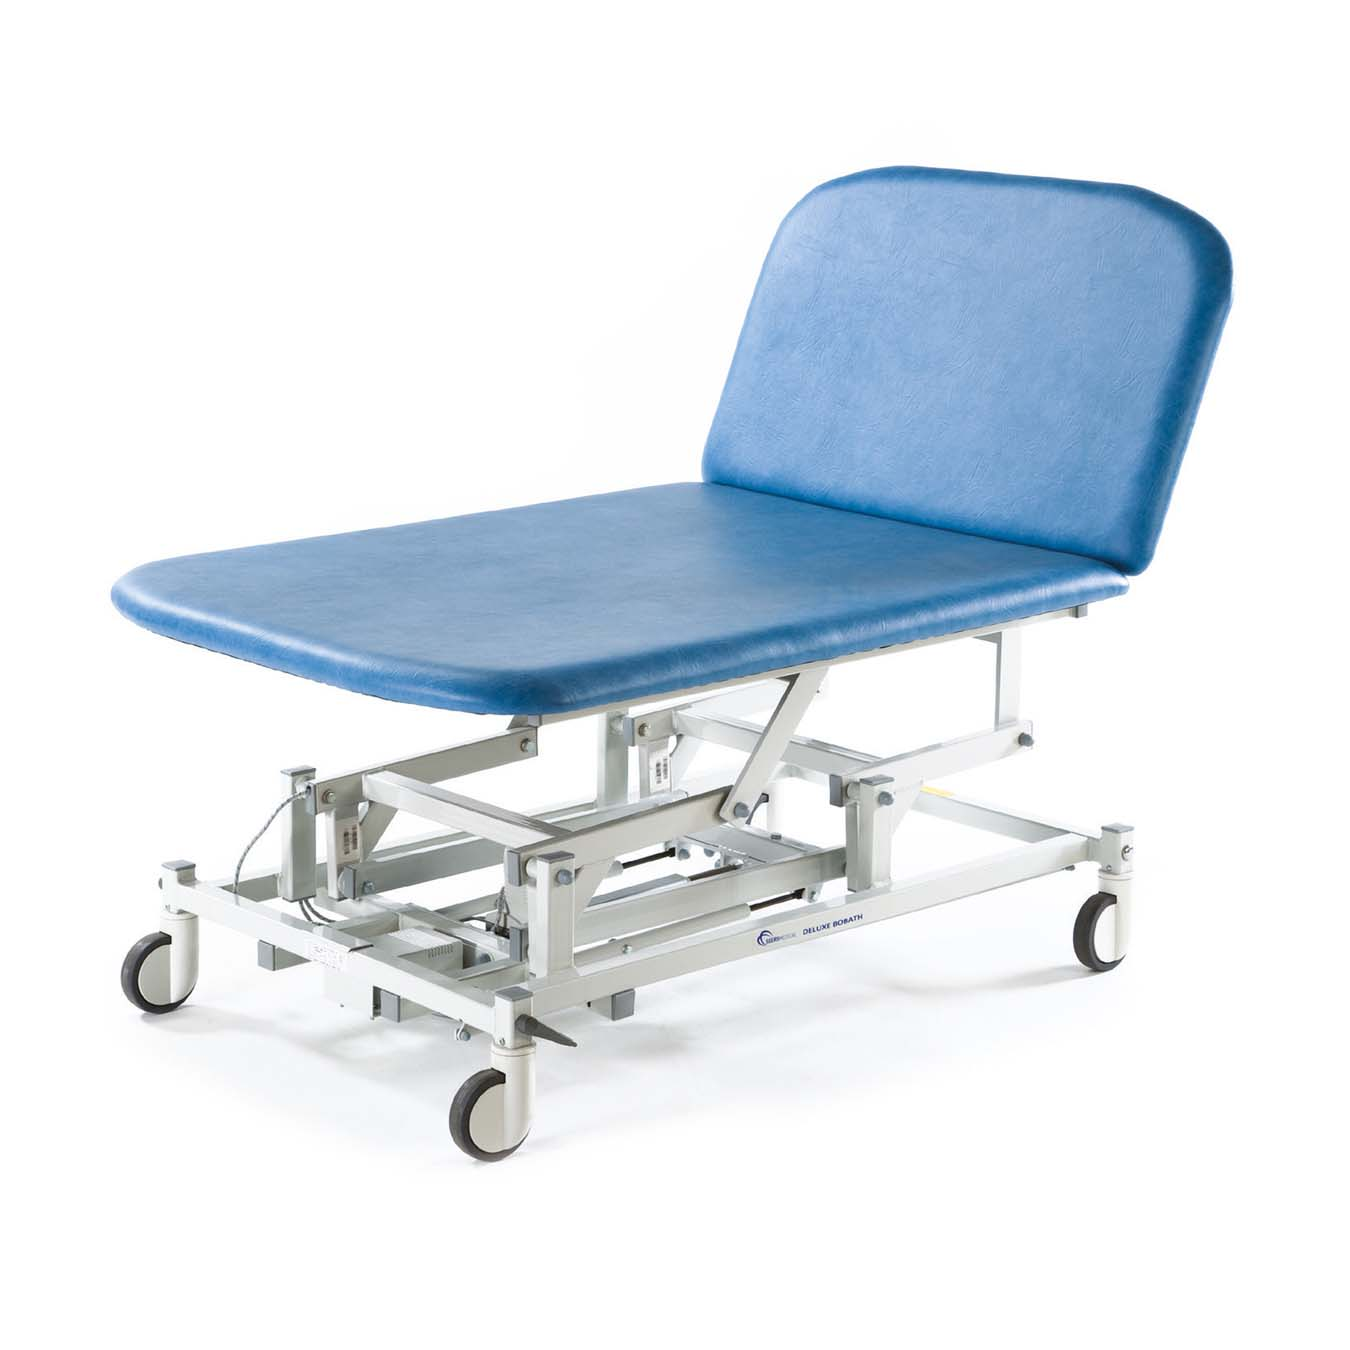 SM4642_1_Seers-Medicare-Bariatric-2-Section-Couch_1